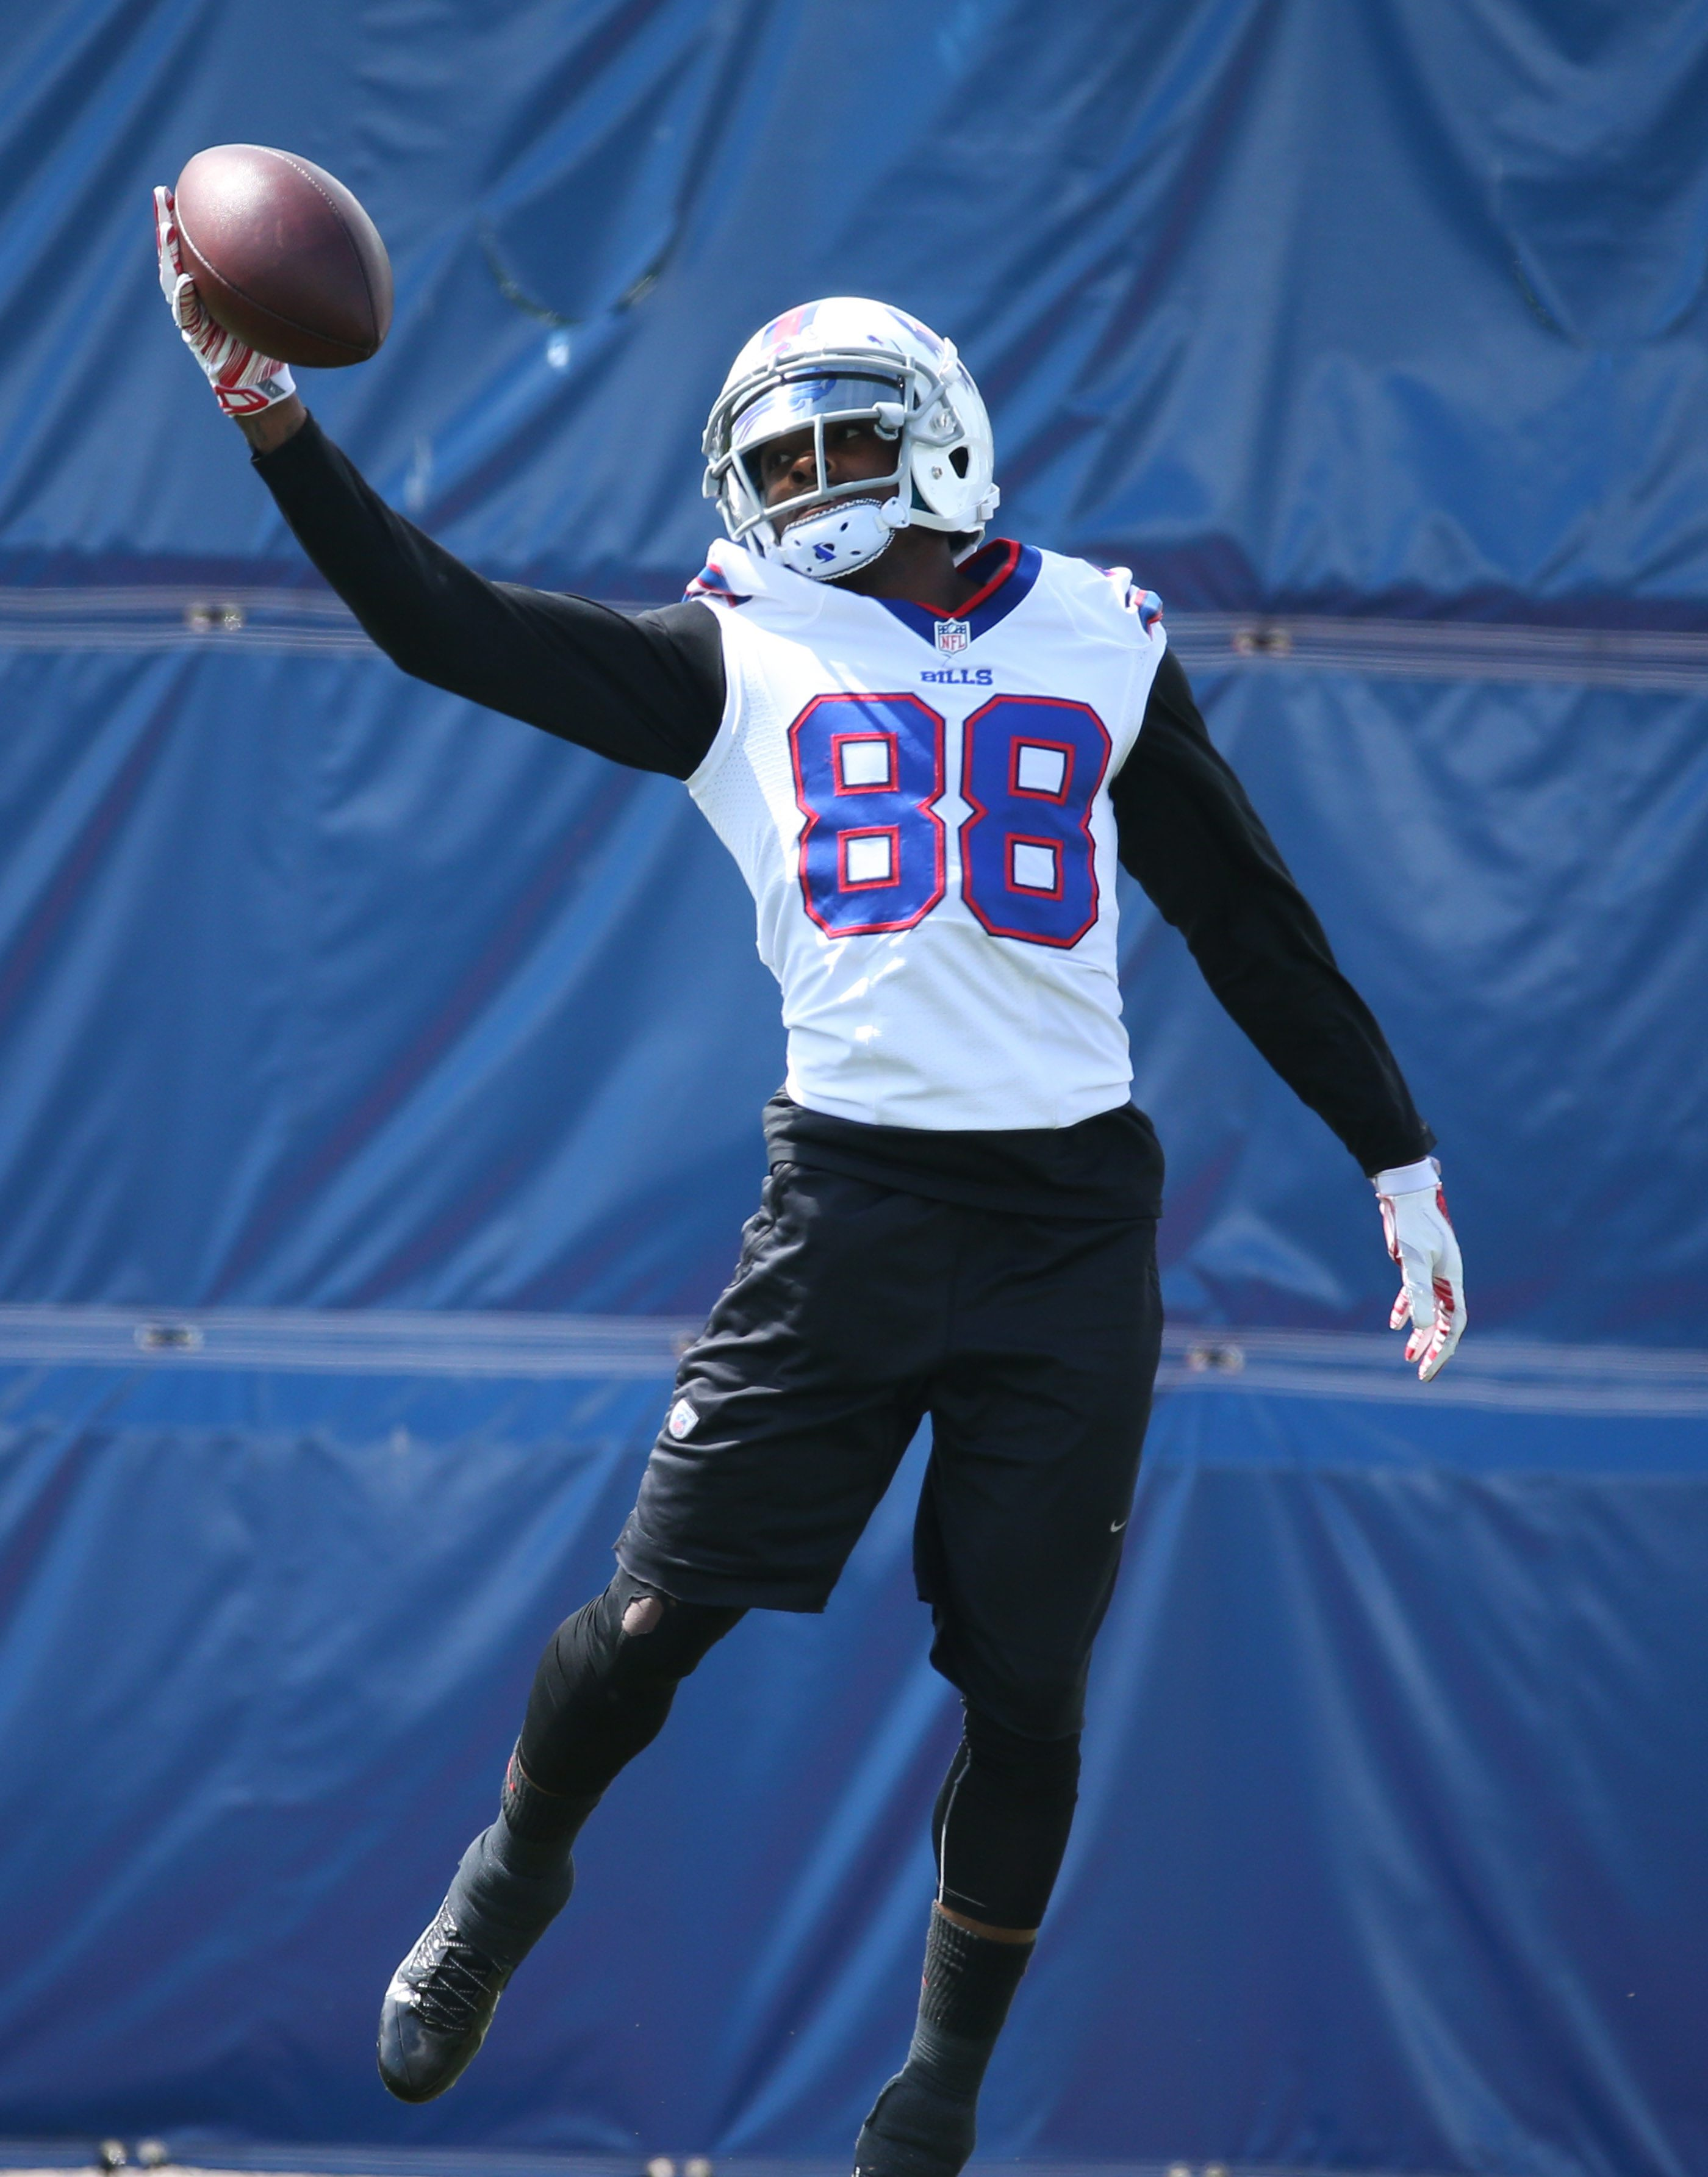 Buffalo Bills wide receiver Marquise Goodwin (88) catches a pass during the second day of Bills mini camp at ADPRO Sports Training Center in Orchard Park,NY on Wednesday, June 17, 2015.  (James P. McCoy/ Buffalo News)